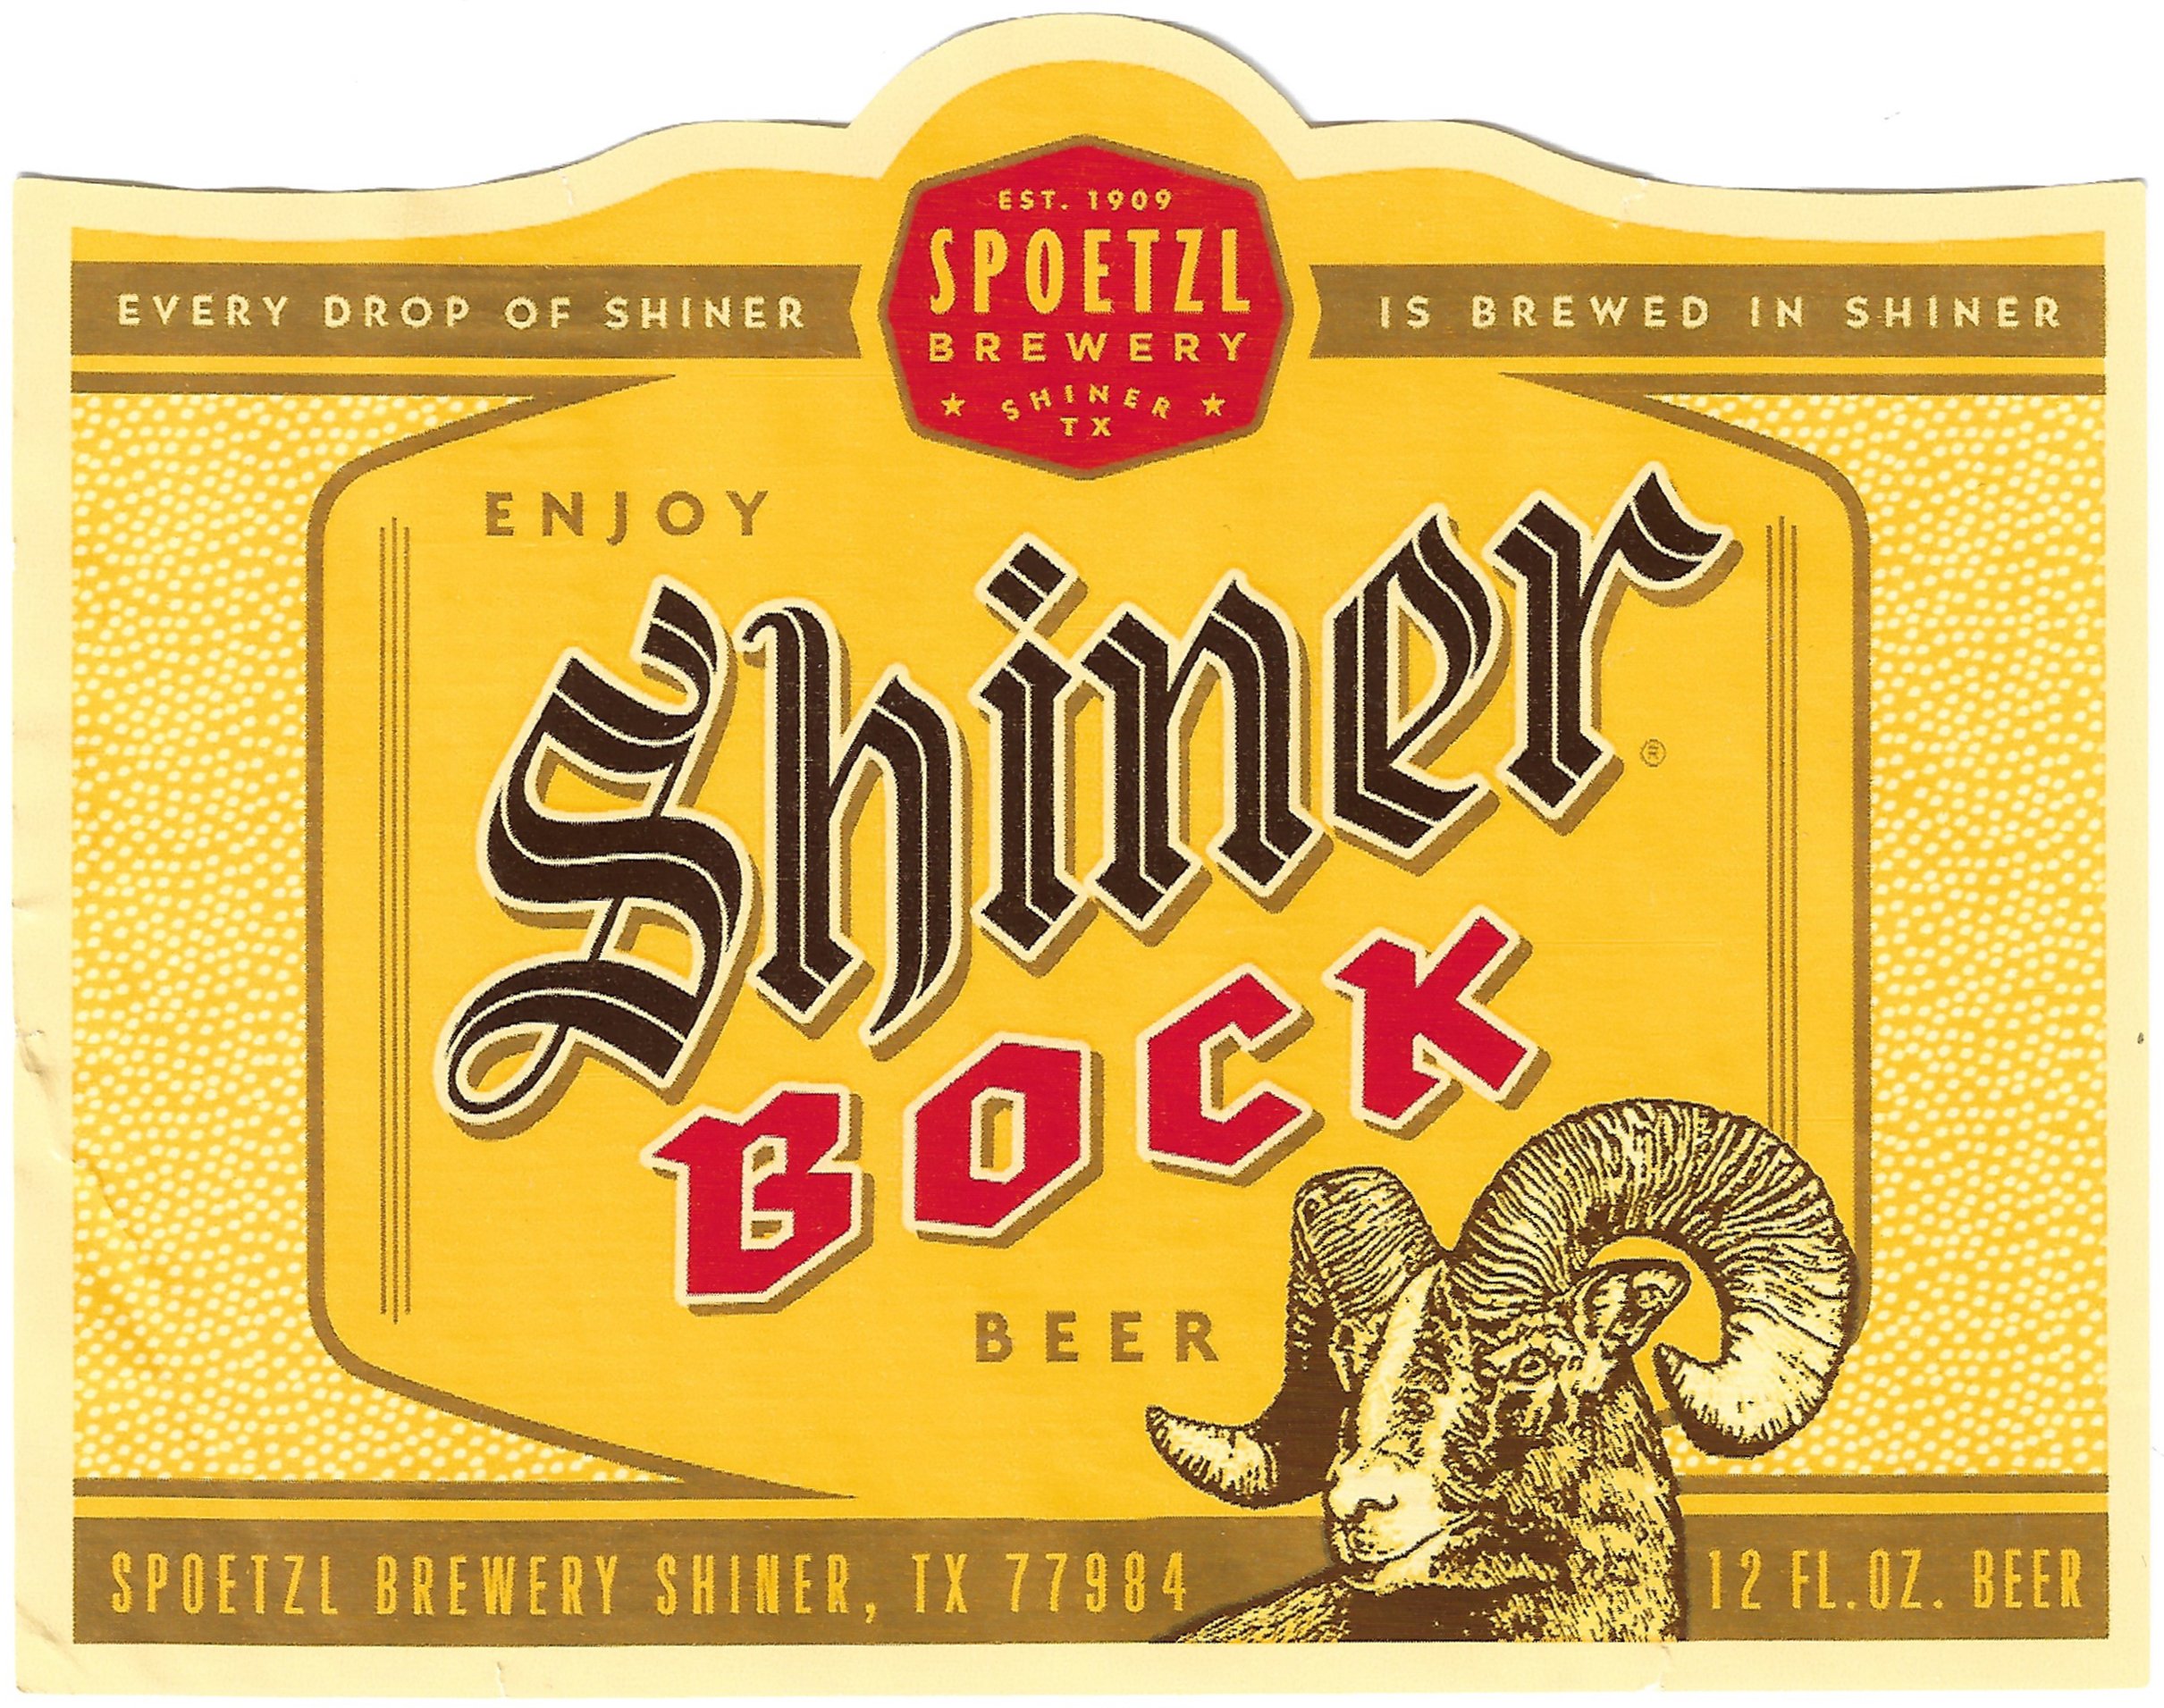 Shiner Bock by McGarrah-Jessee for Shiner & The Spoetzel Brewery.jpg